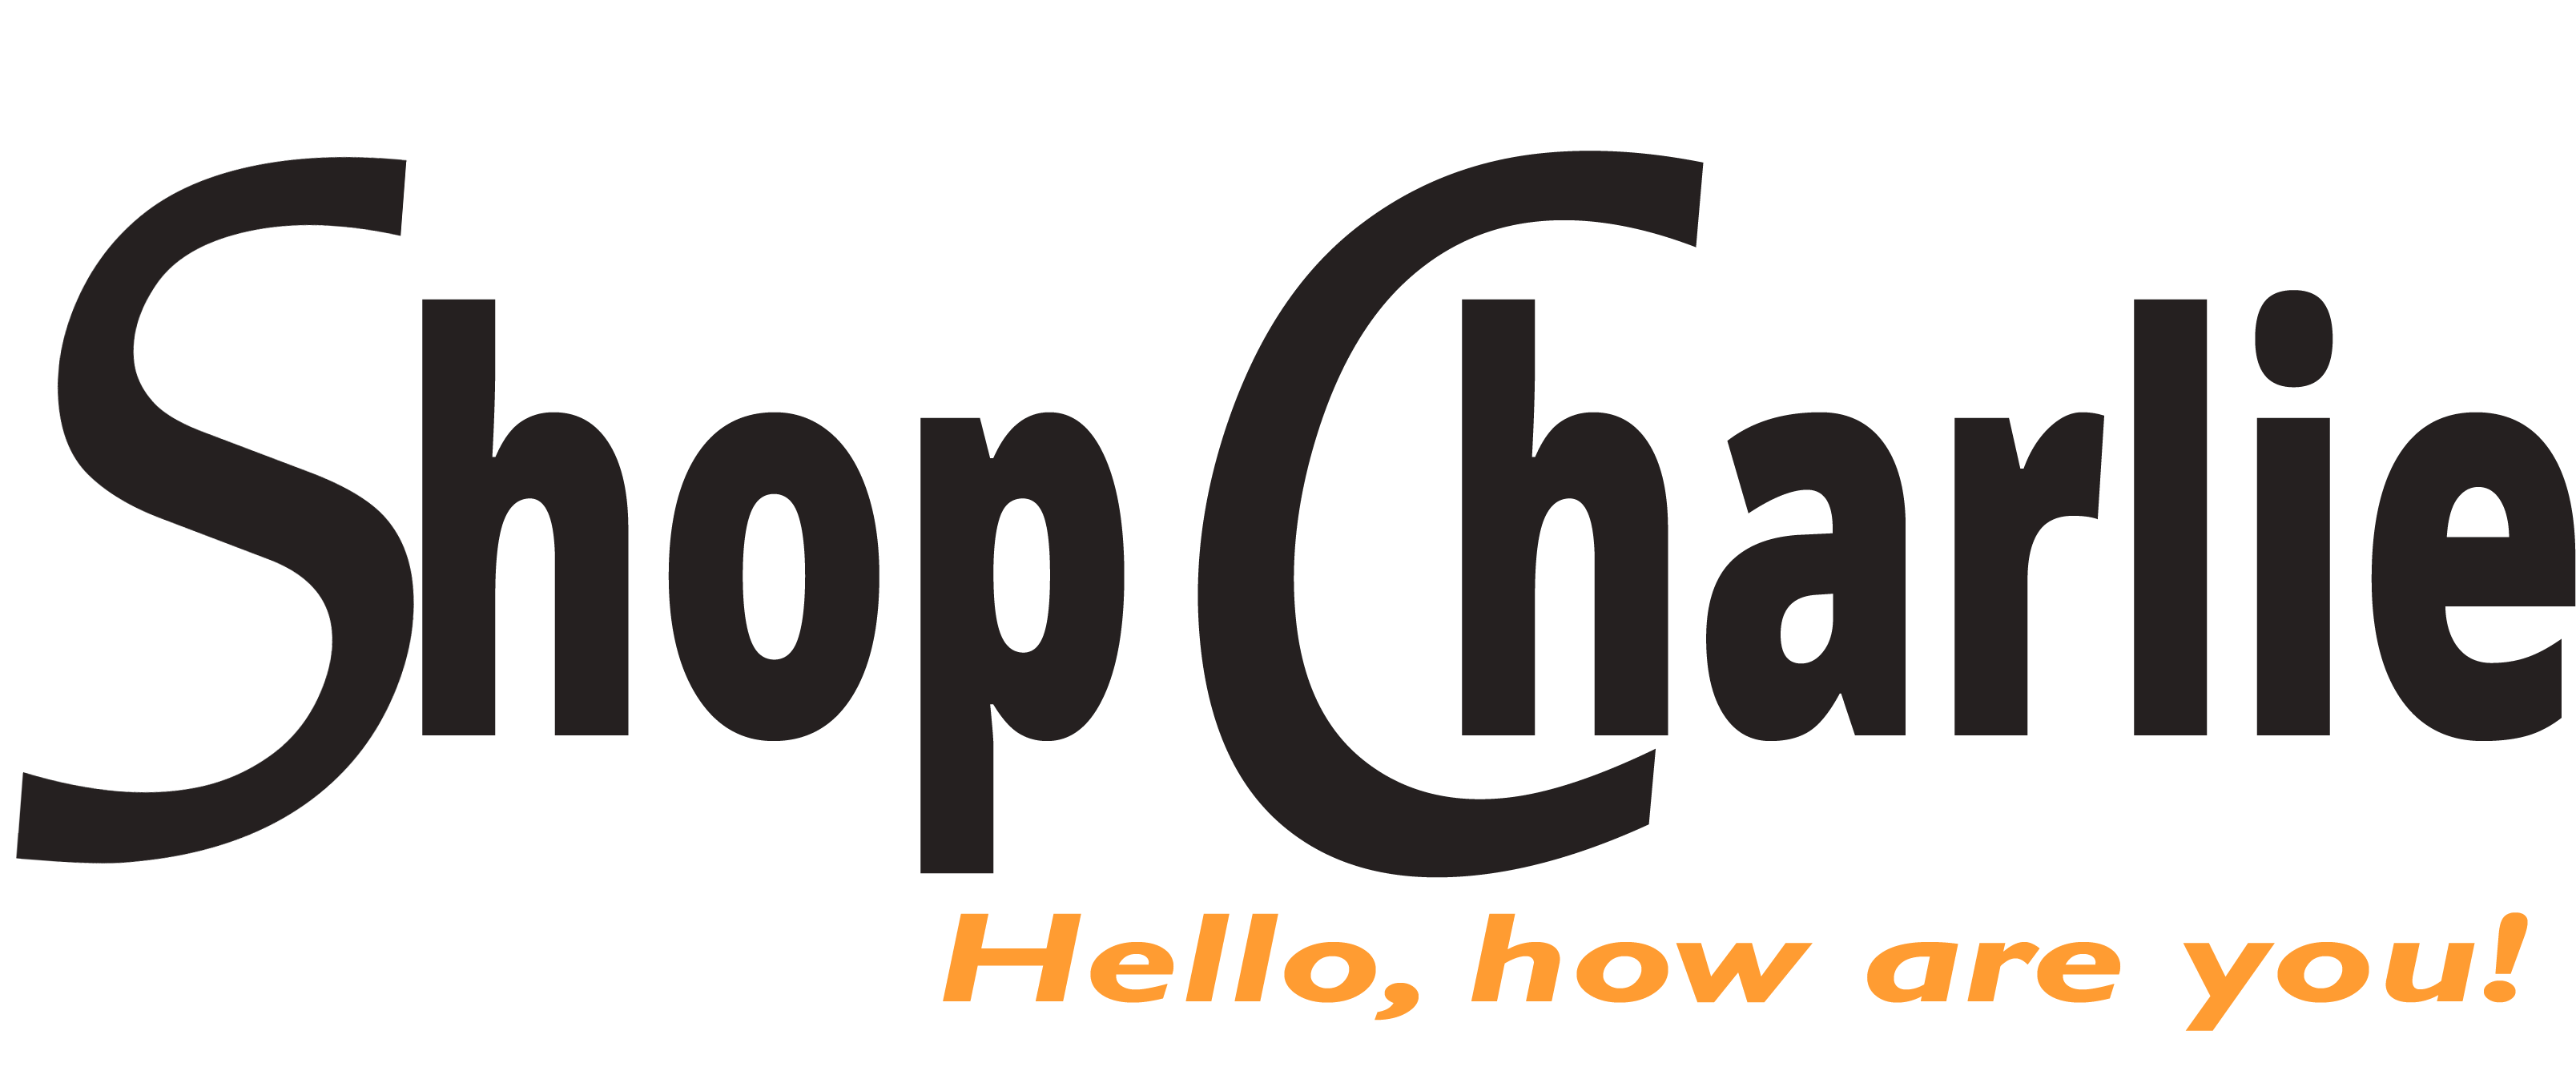 ShopCharlie.com by Cellunex